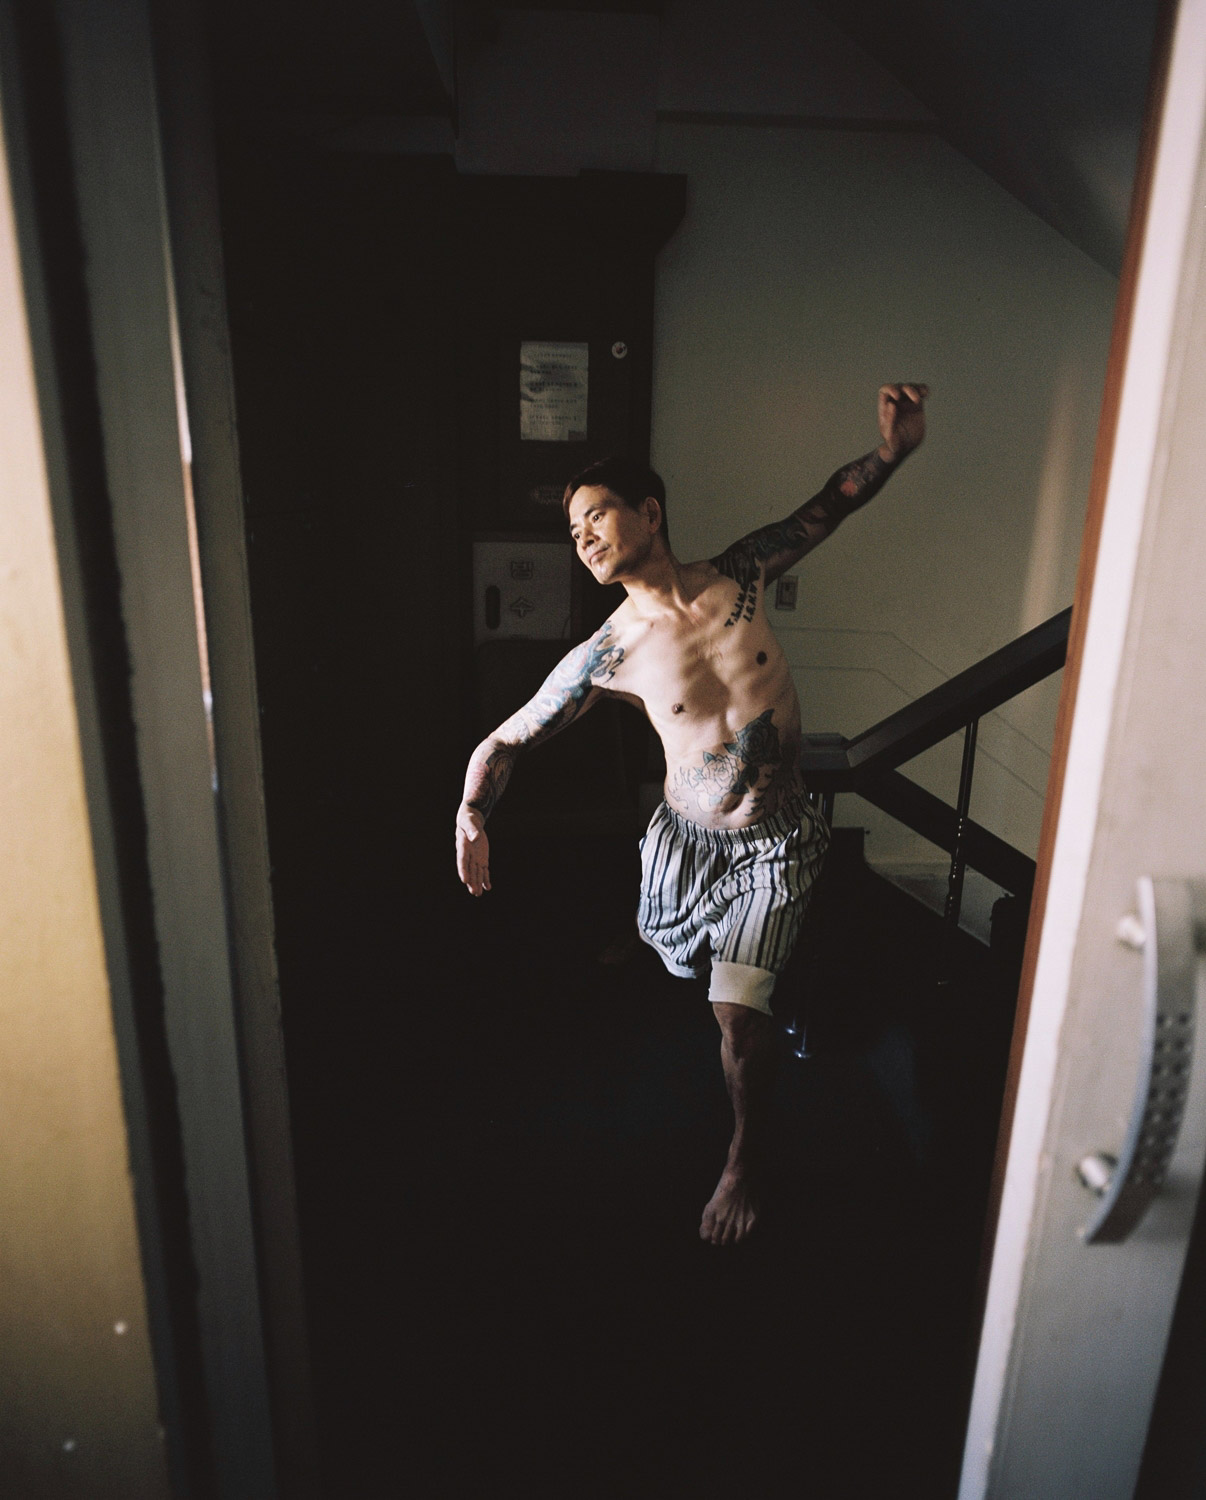 A resident looks into a mirror in the stairway. and practices sports dance. (Credit: Sim Kyu-dong)